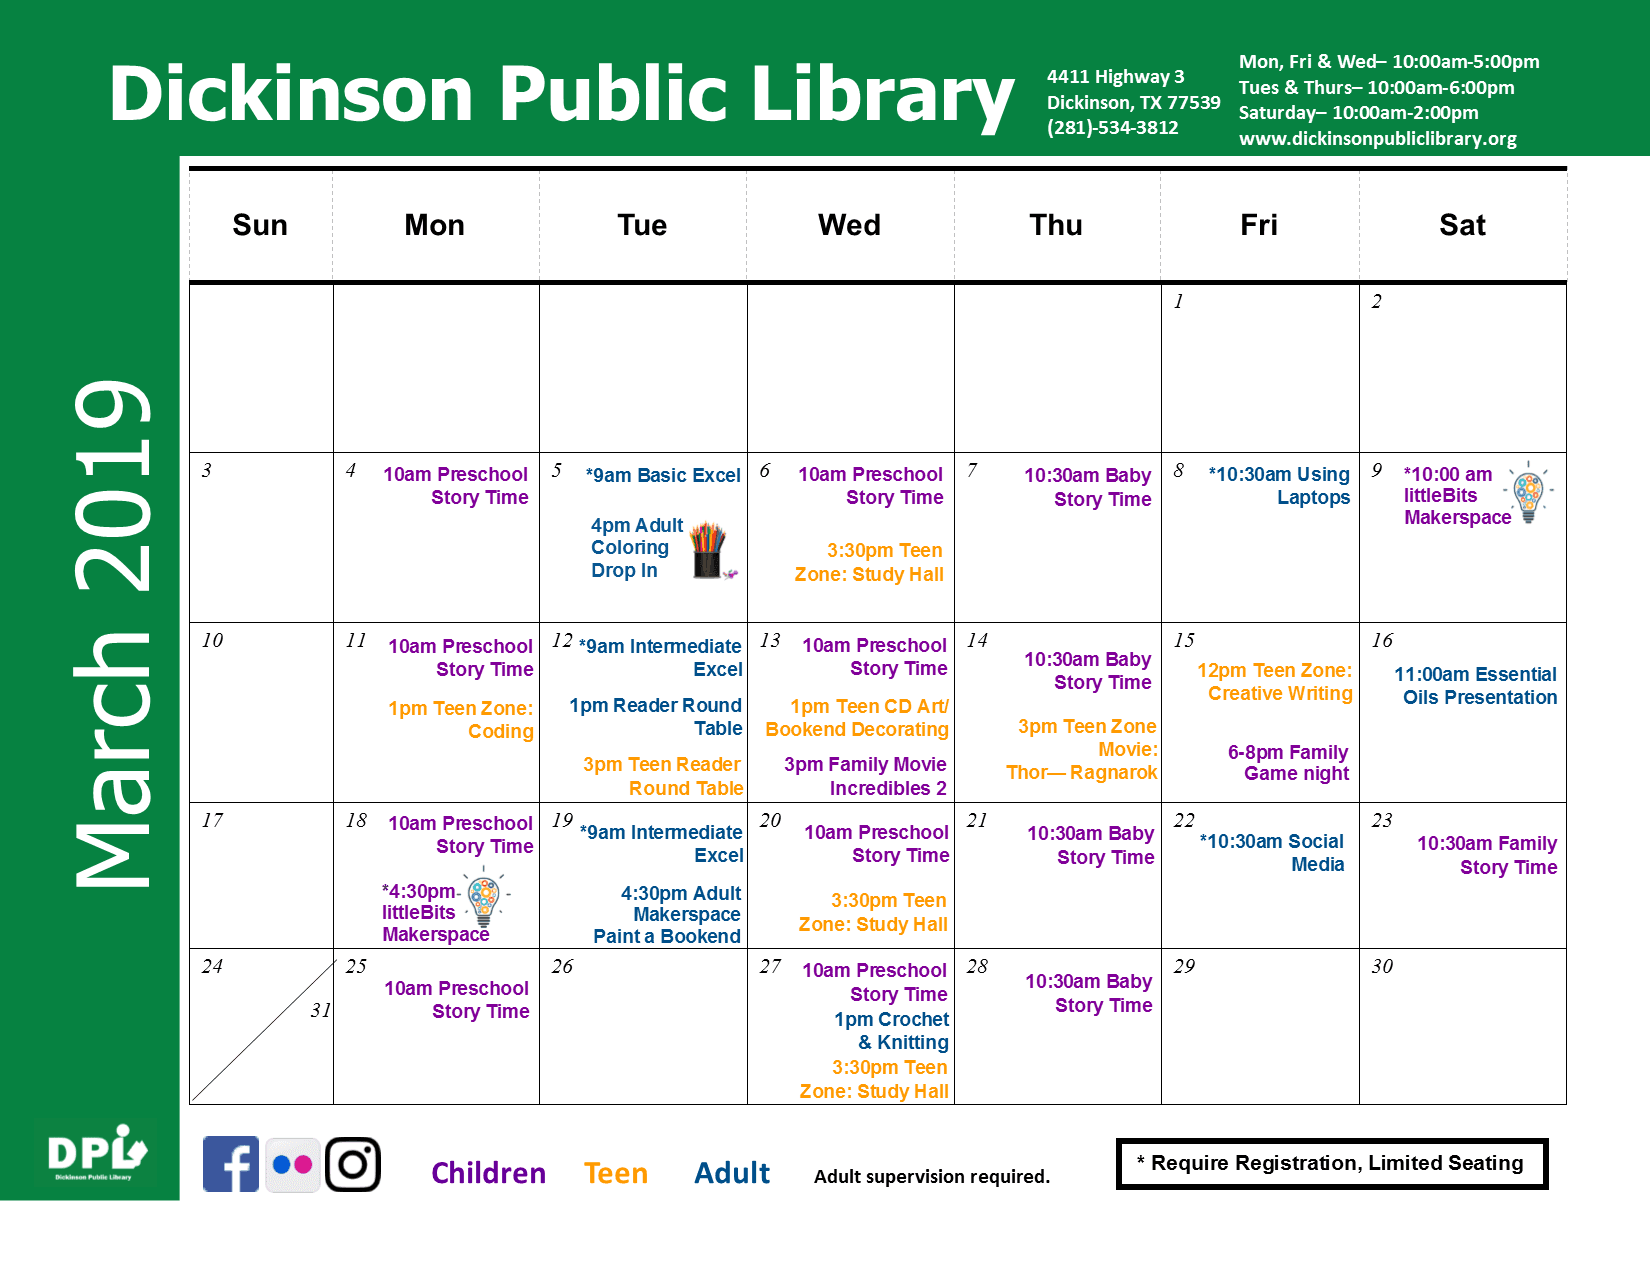 dickinson public library march 2019 calendar events